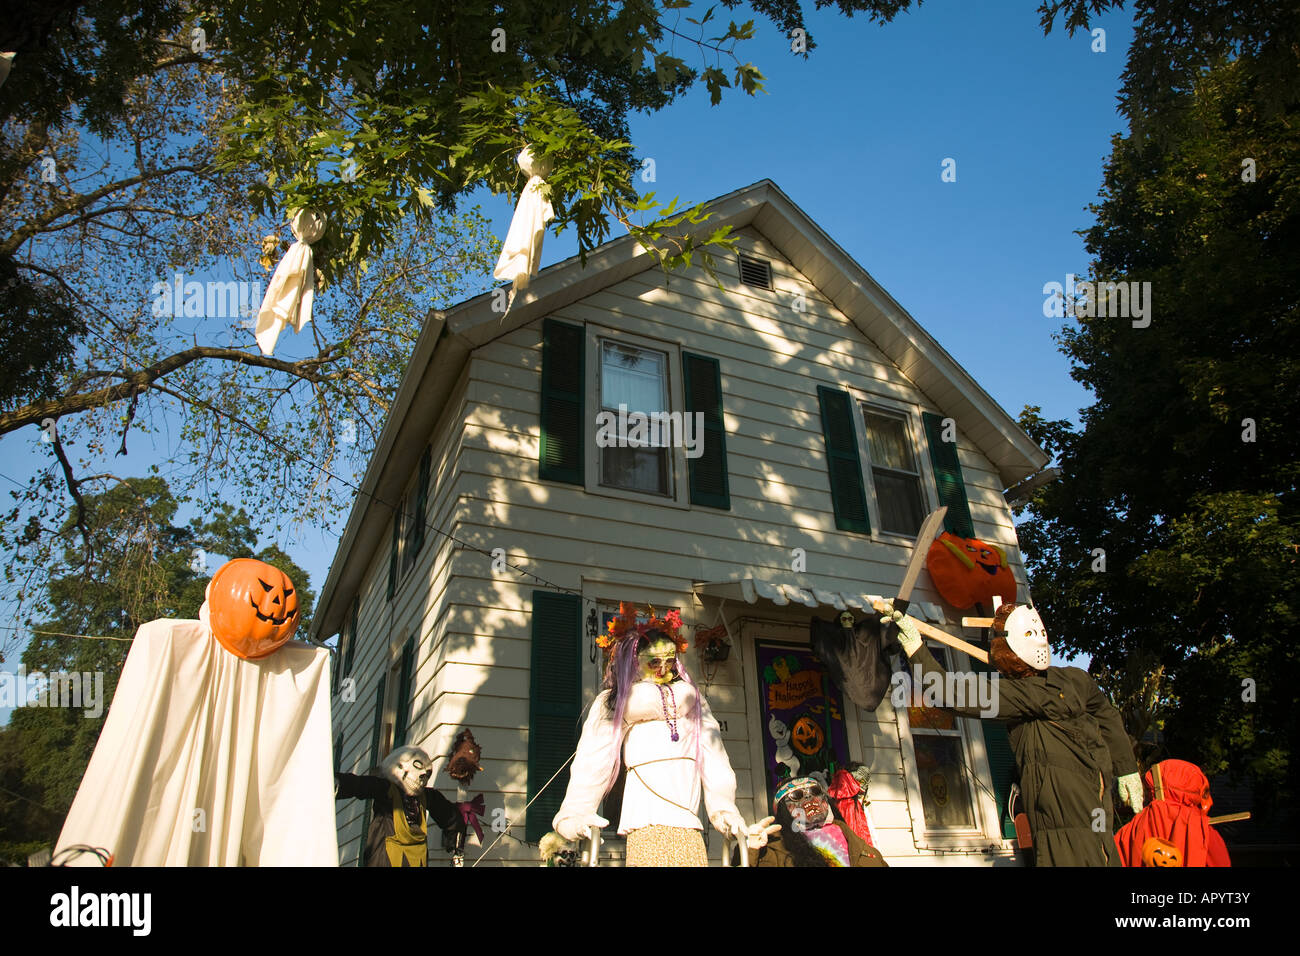 Halloween Decorations Stock Photos & Halloween Decorations Stock ...